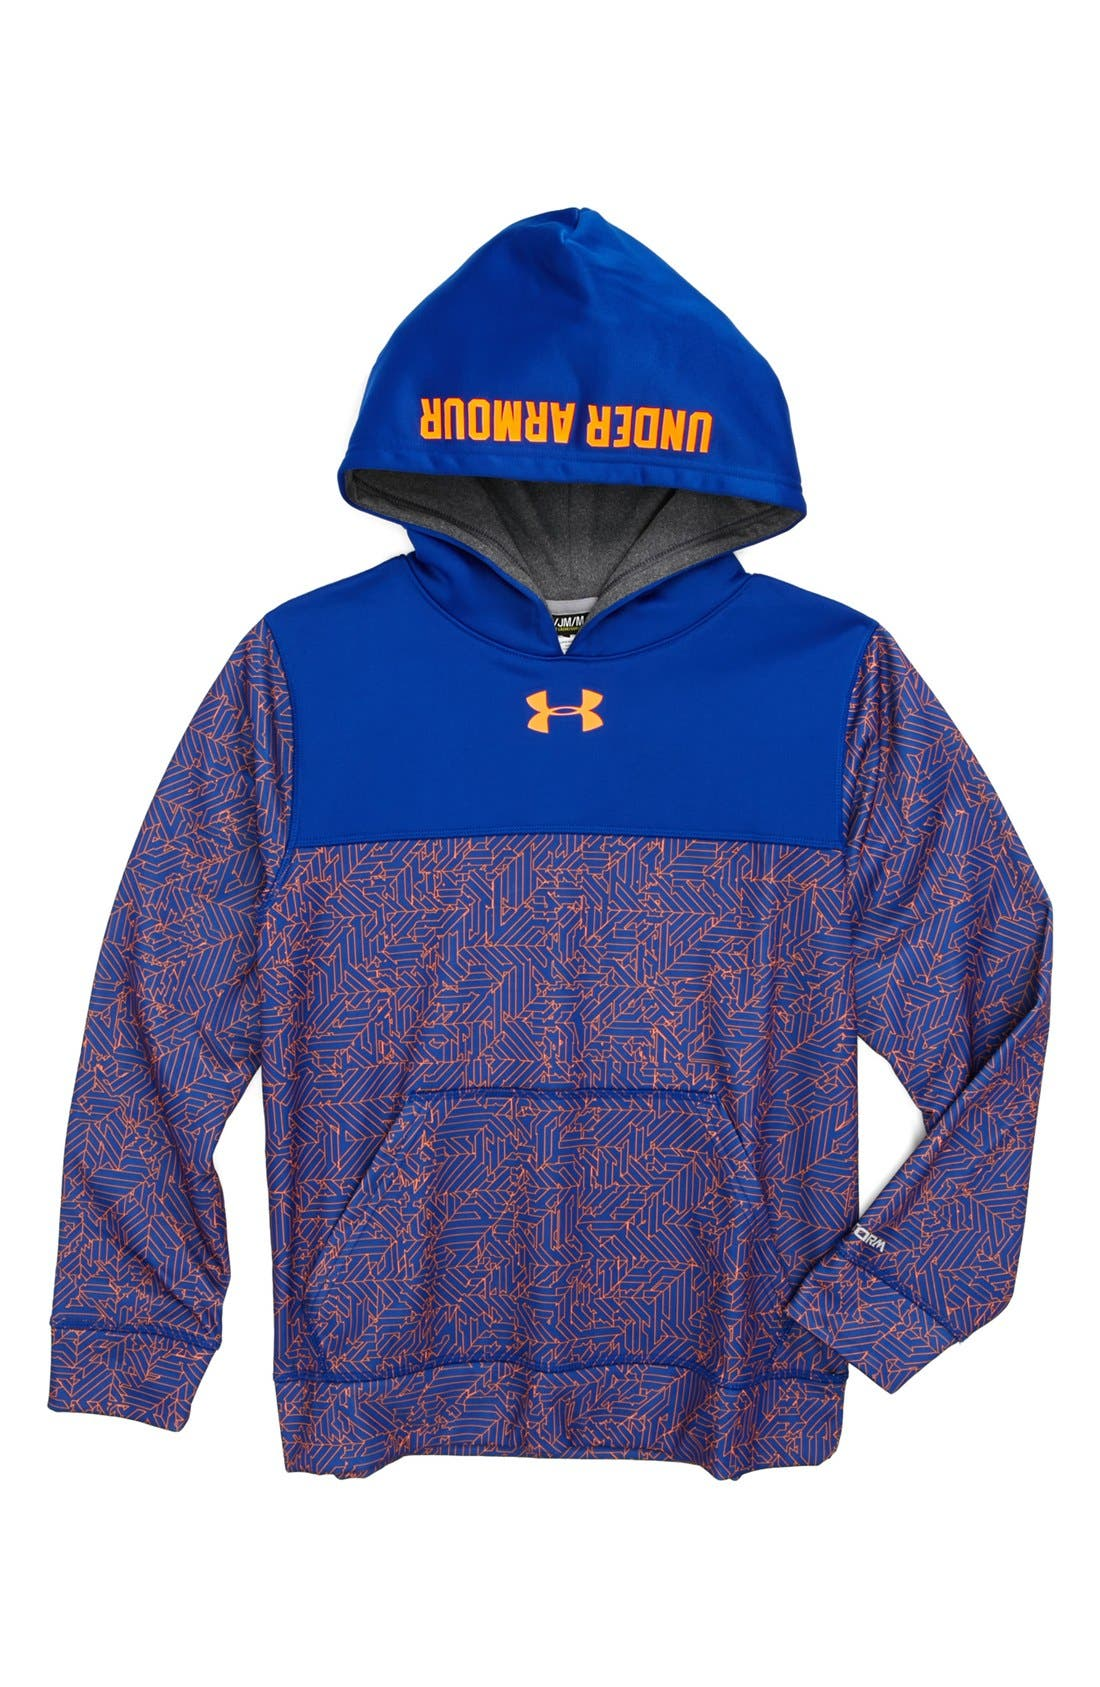 Alternate Image 1 Selected - Under Armour 'Storm' Blocked Pullover Jacket (Big Boys)